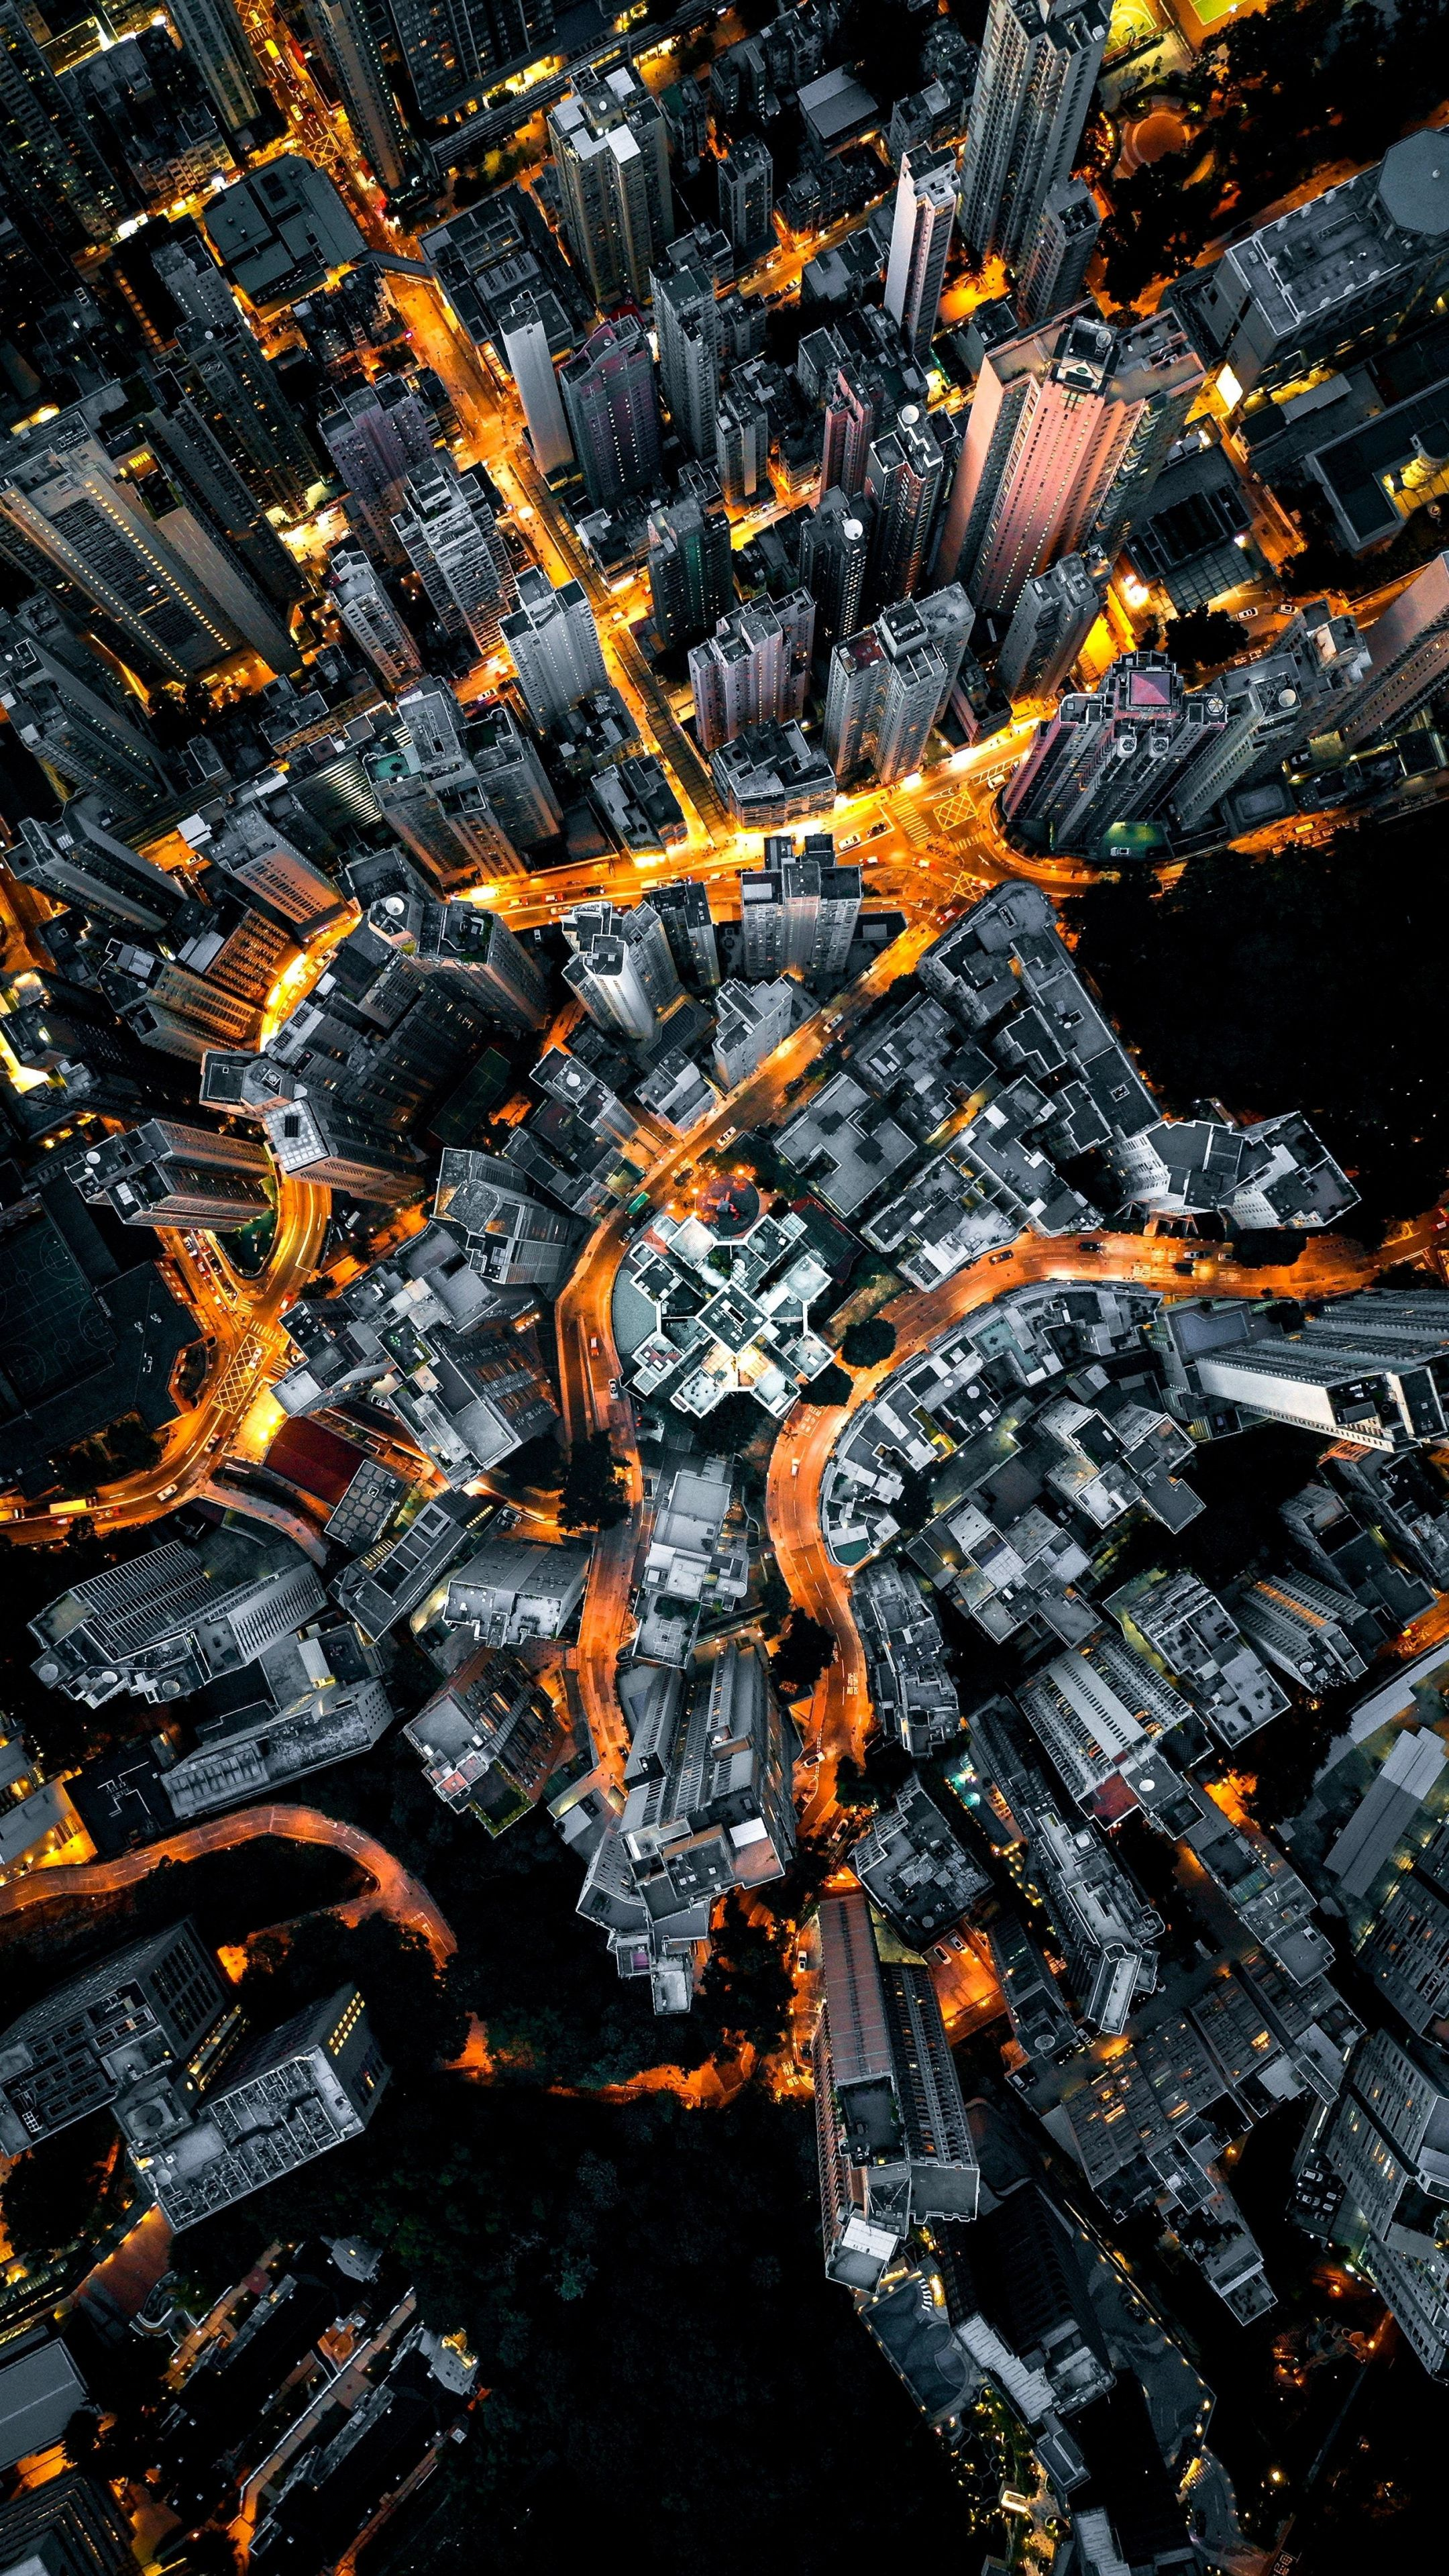 2160x3840 Night, aerial view, yellow lights of road, city